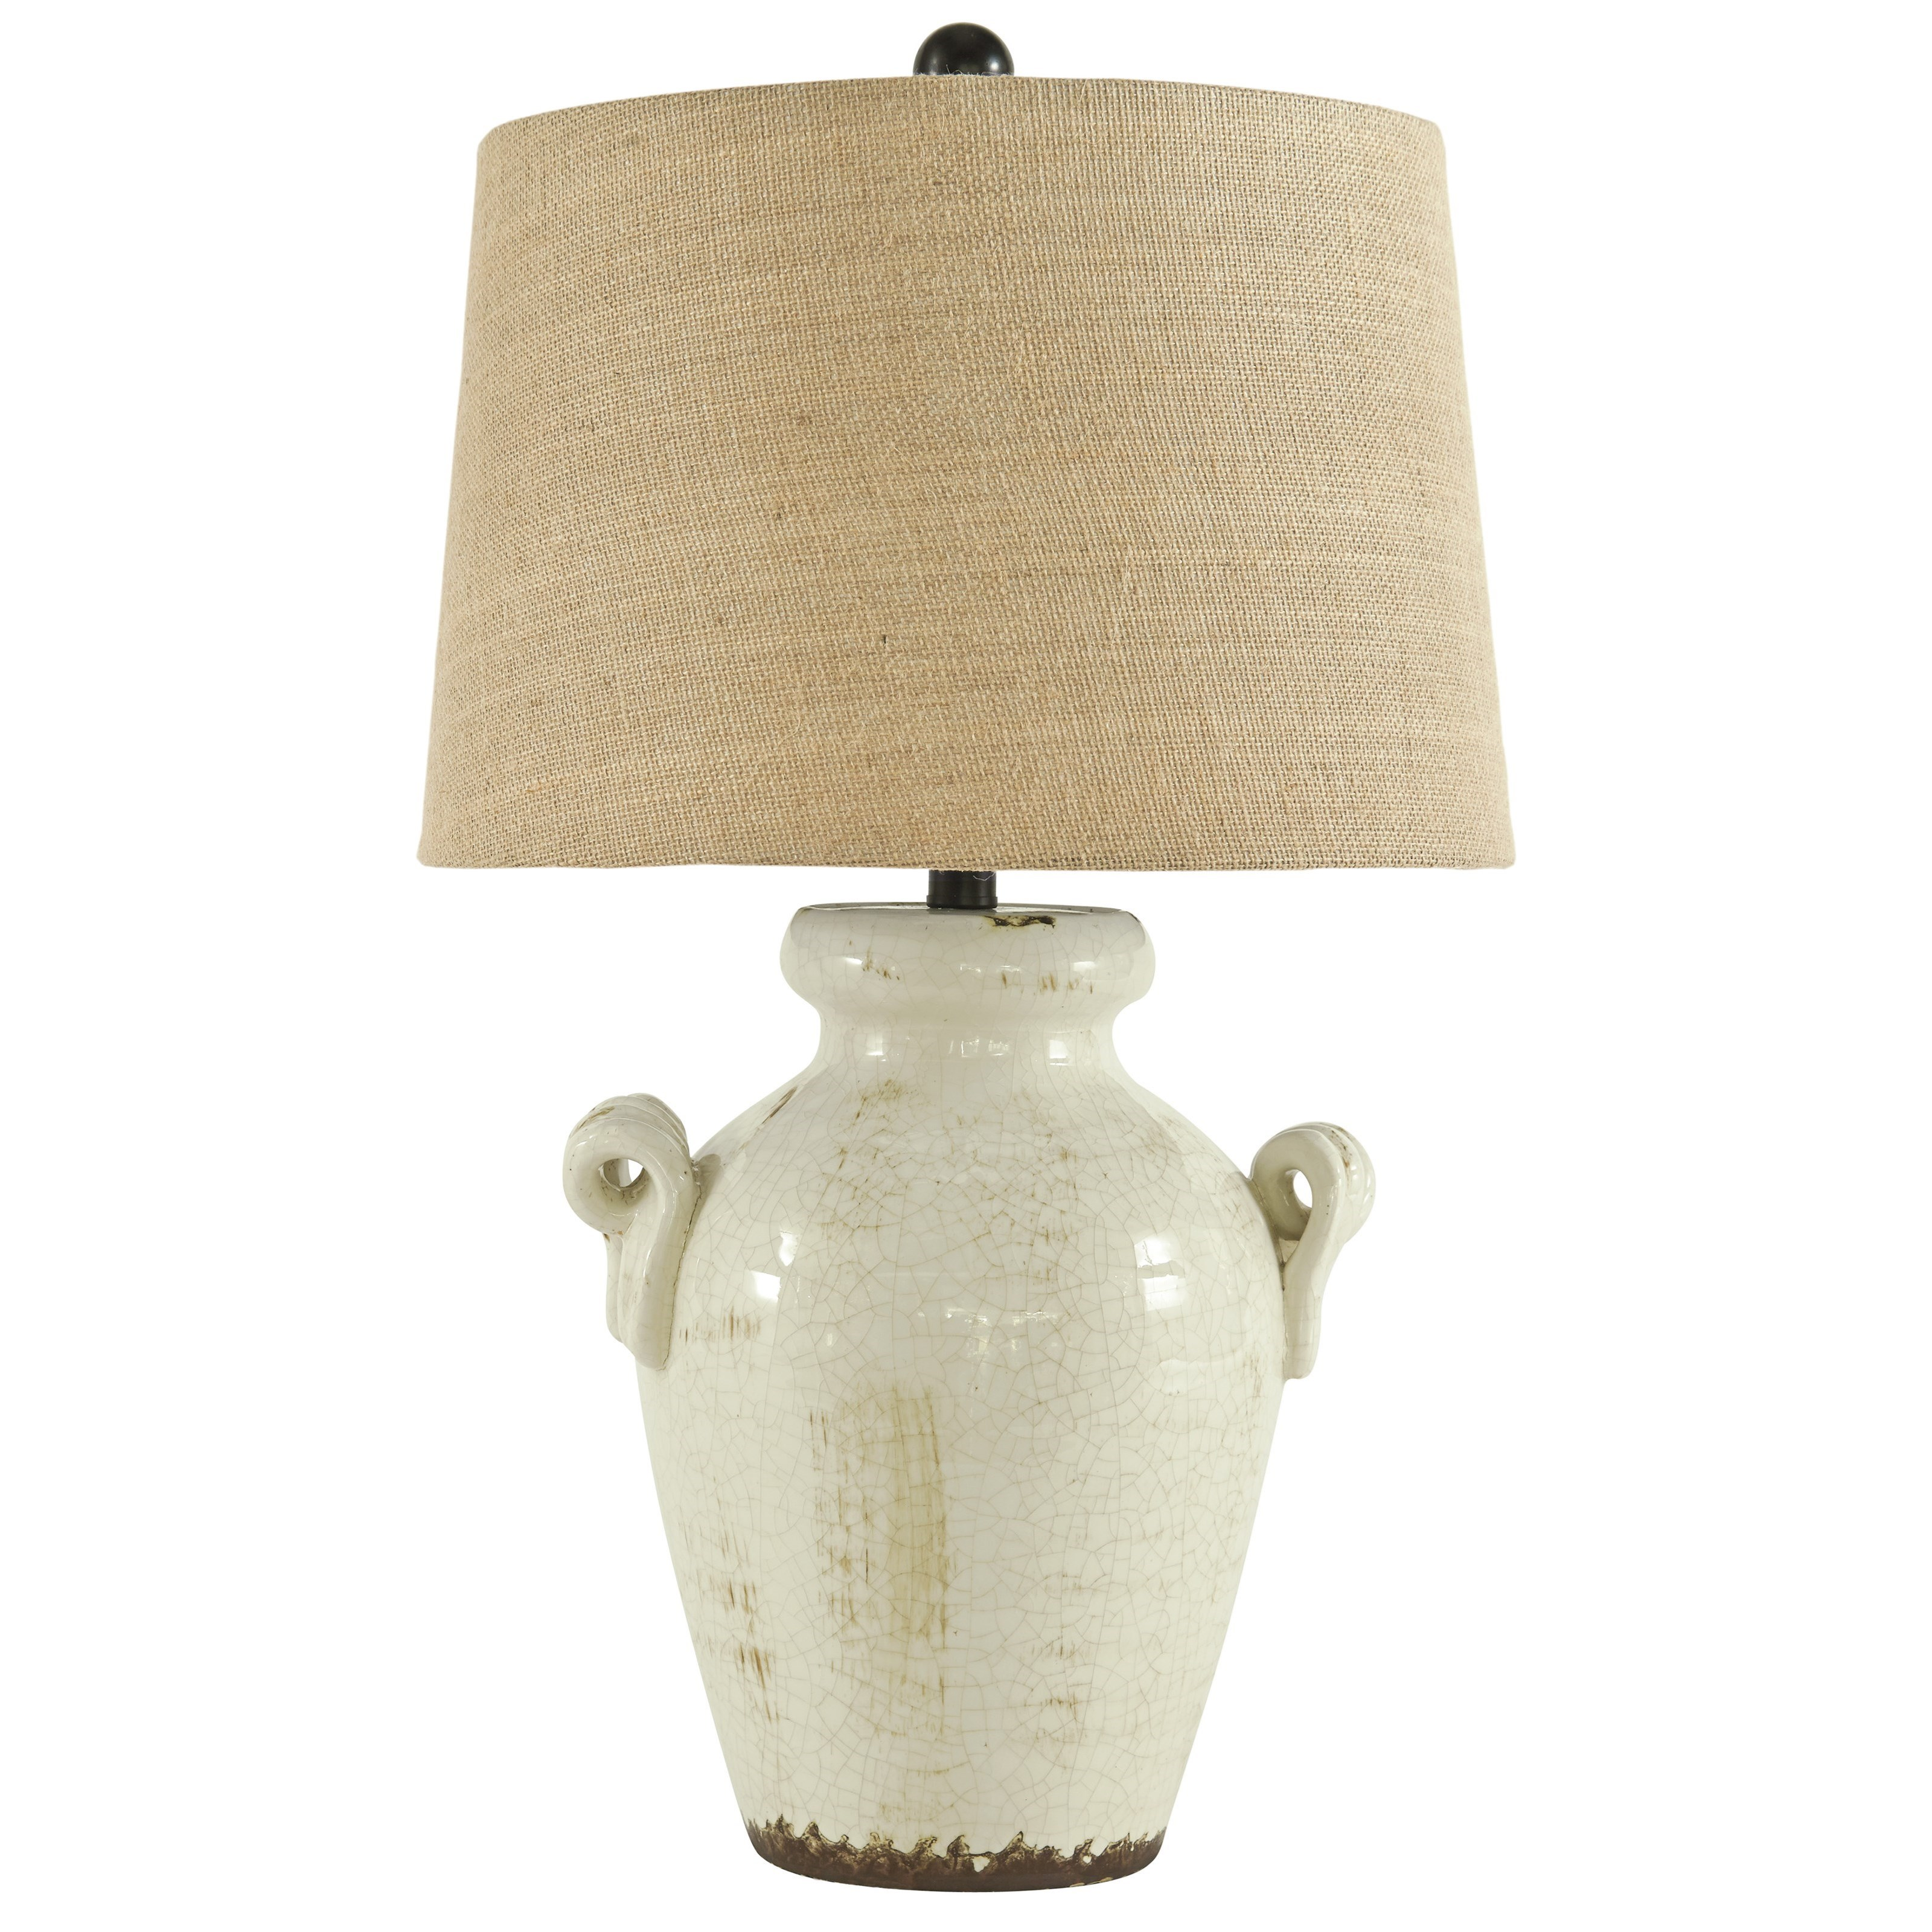 Signature Design By Ashley Lamps Vintage Style Emelda Cream